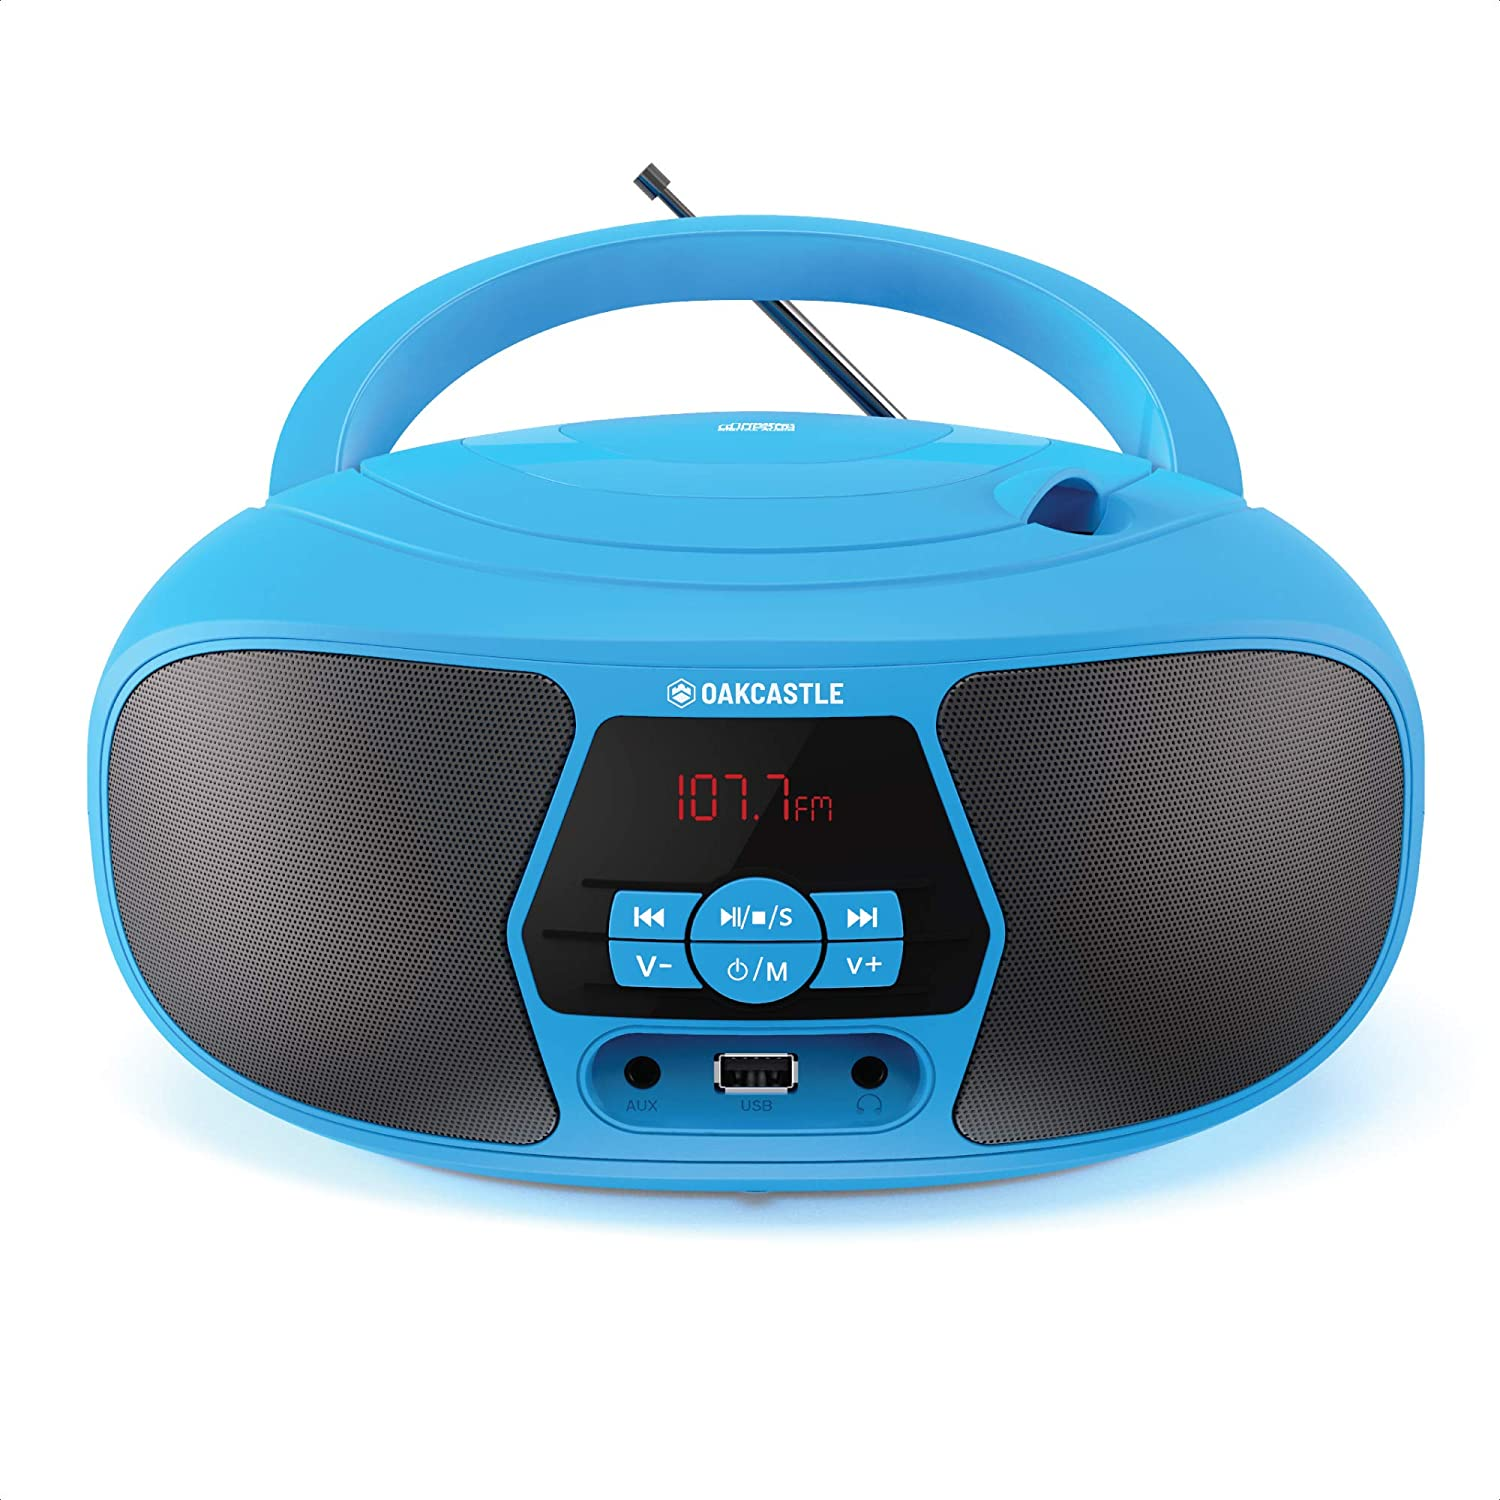 Oakcastle BX200 Inventory cleanup selling sale Boombox Portable CD Radio FM and 2021 model Player Blue